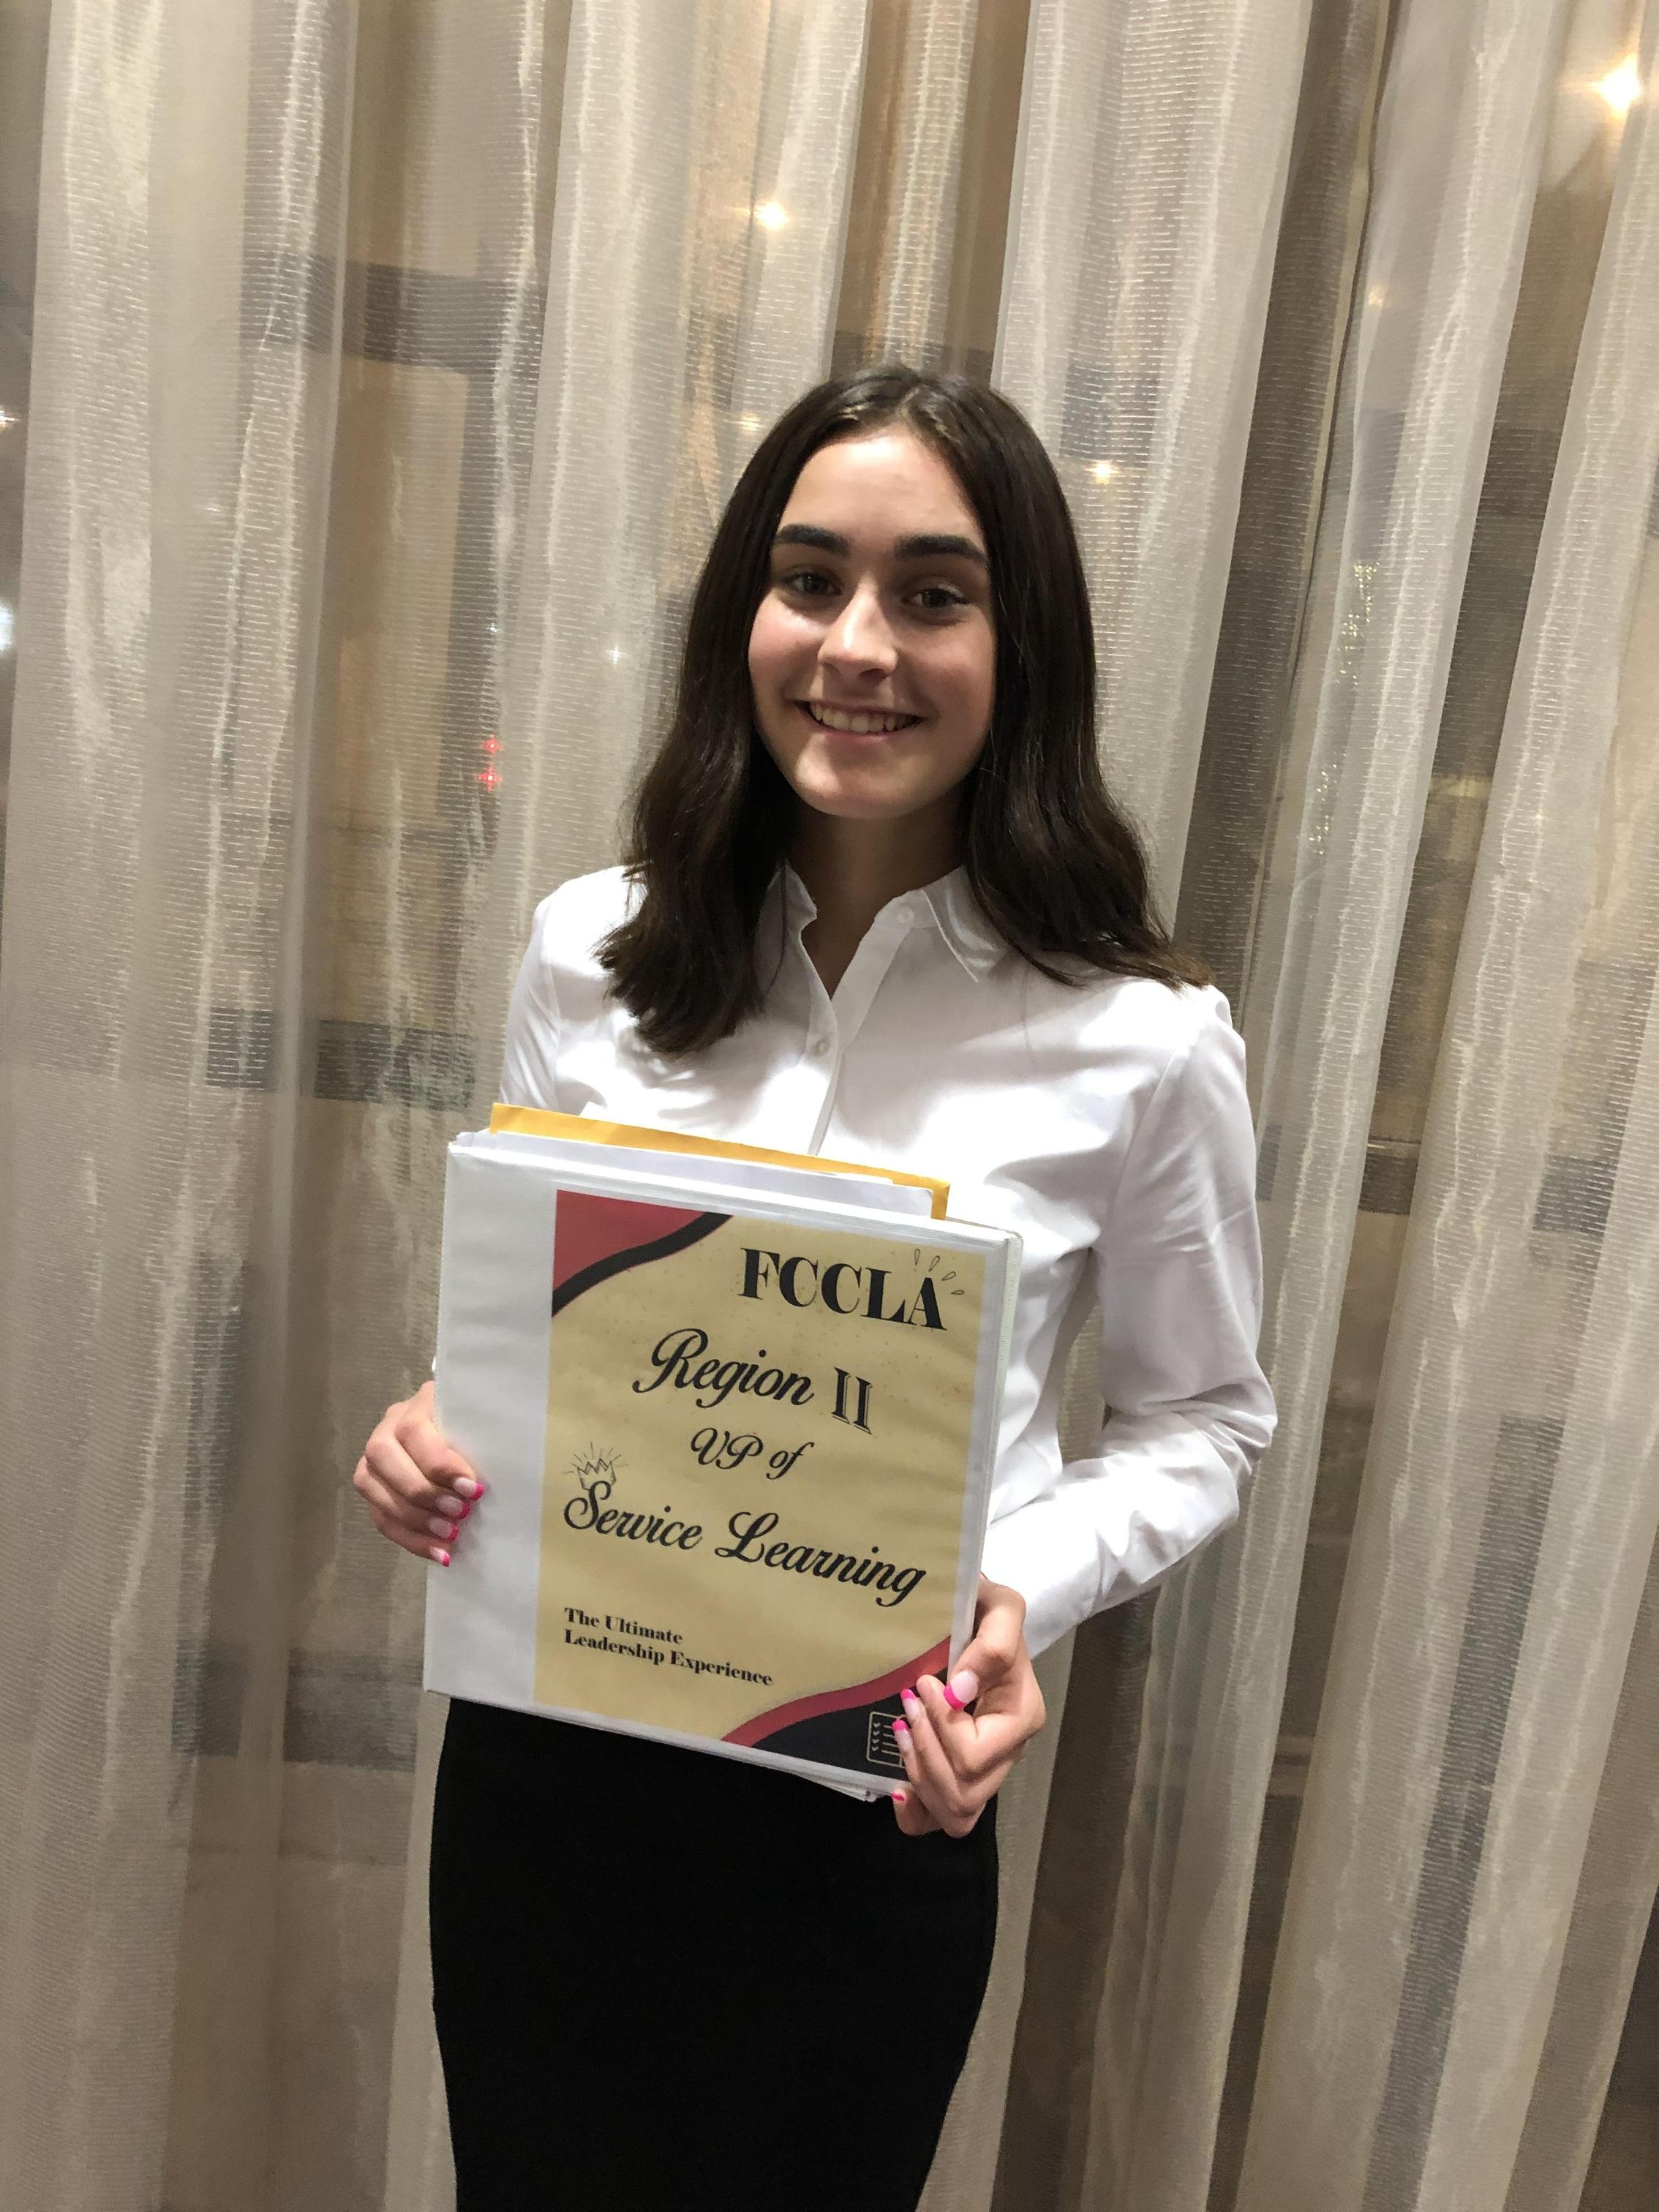 Sanger High FCCLA has the newly elected Region II Vice President of Service Learning